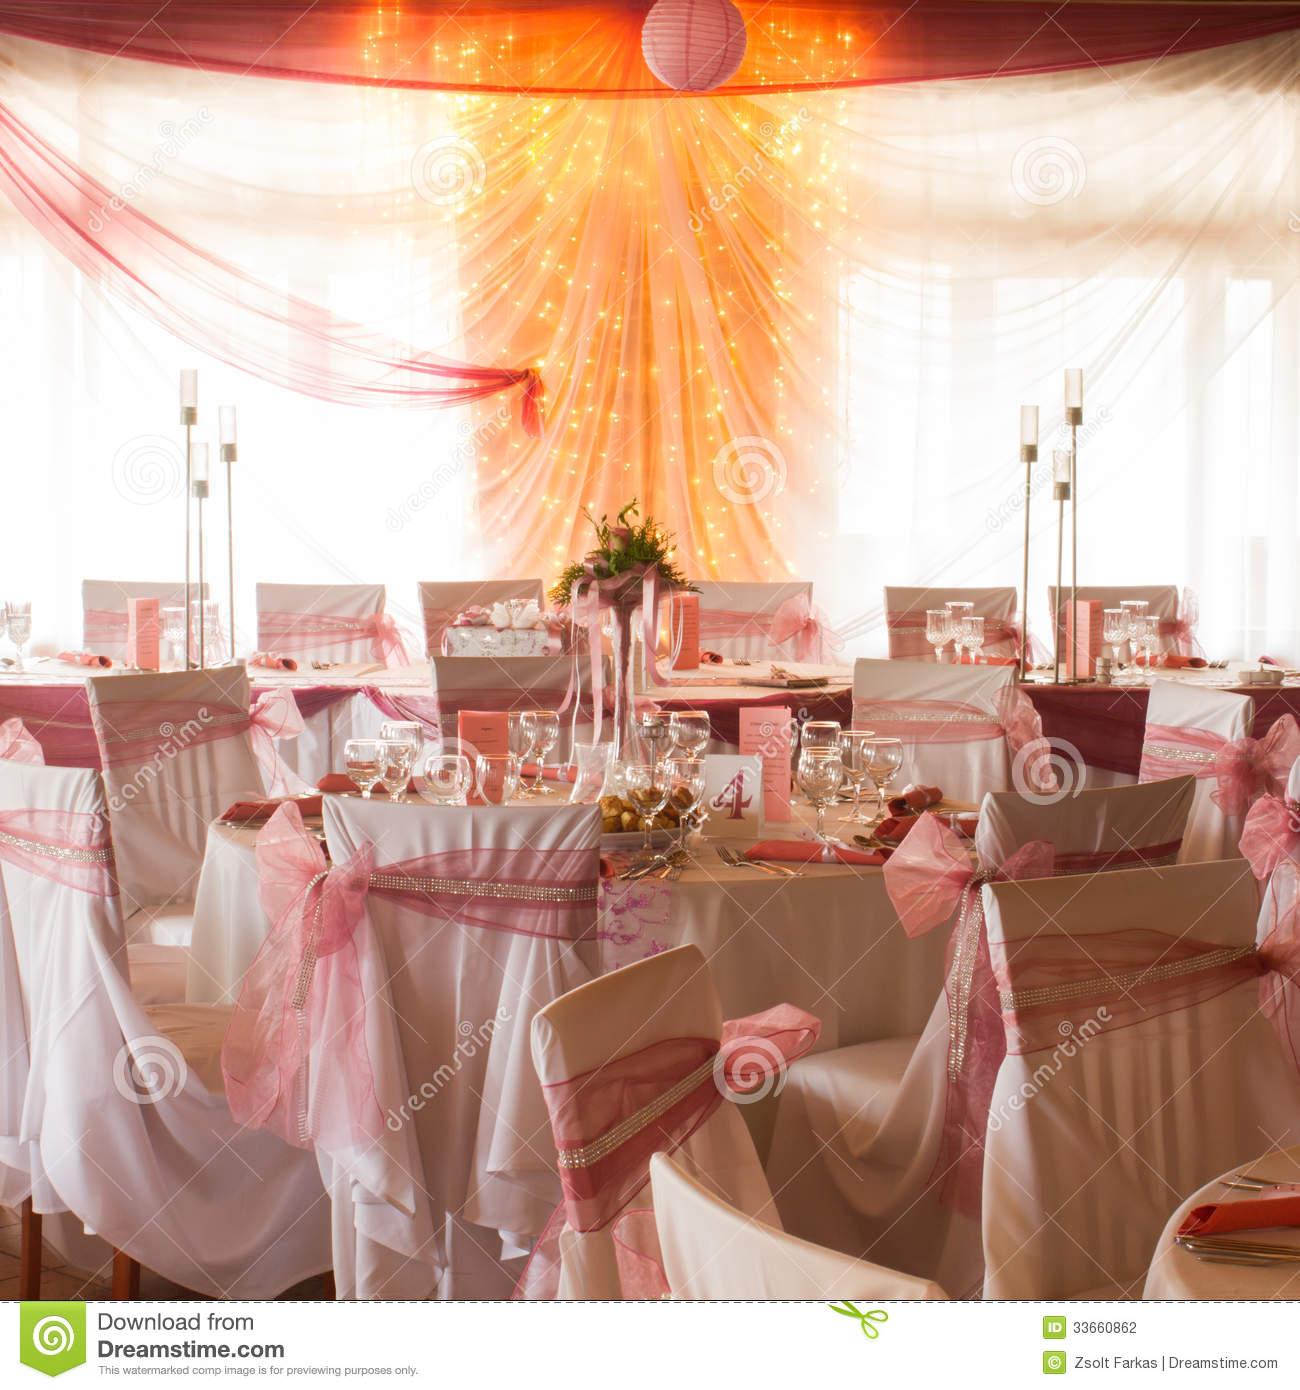 An Image Of Tables Setting At A Luxury Wedding Hall Stock  : image tables setting luxury wedding hall white pink decorations white curtain orange lights background 33660862 from www.dreamstime.com size 1300 x 1390 jpeg 208kB